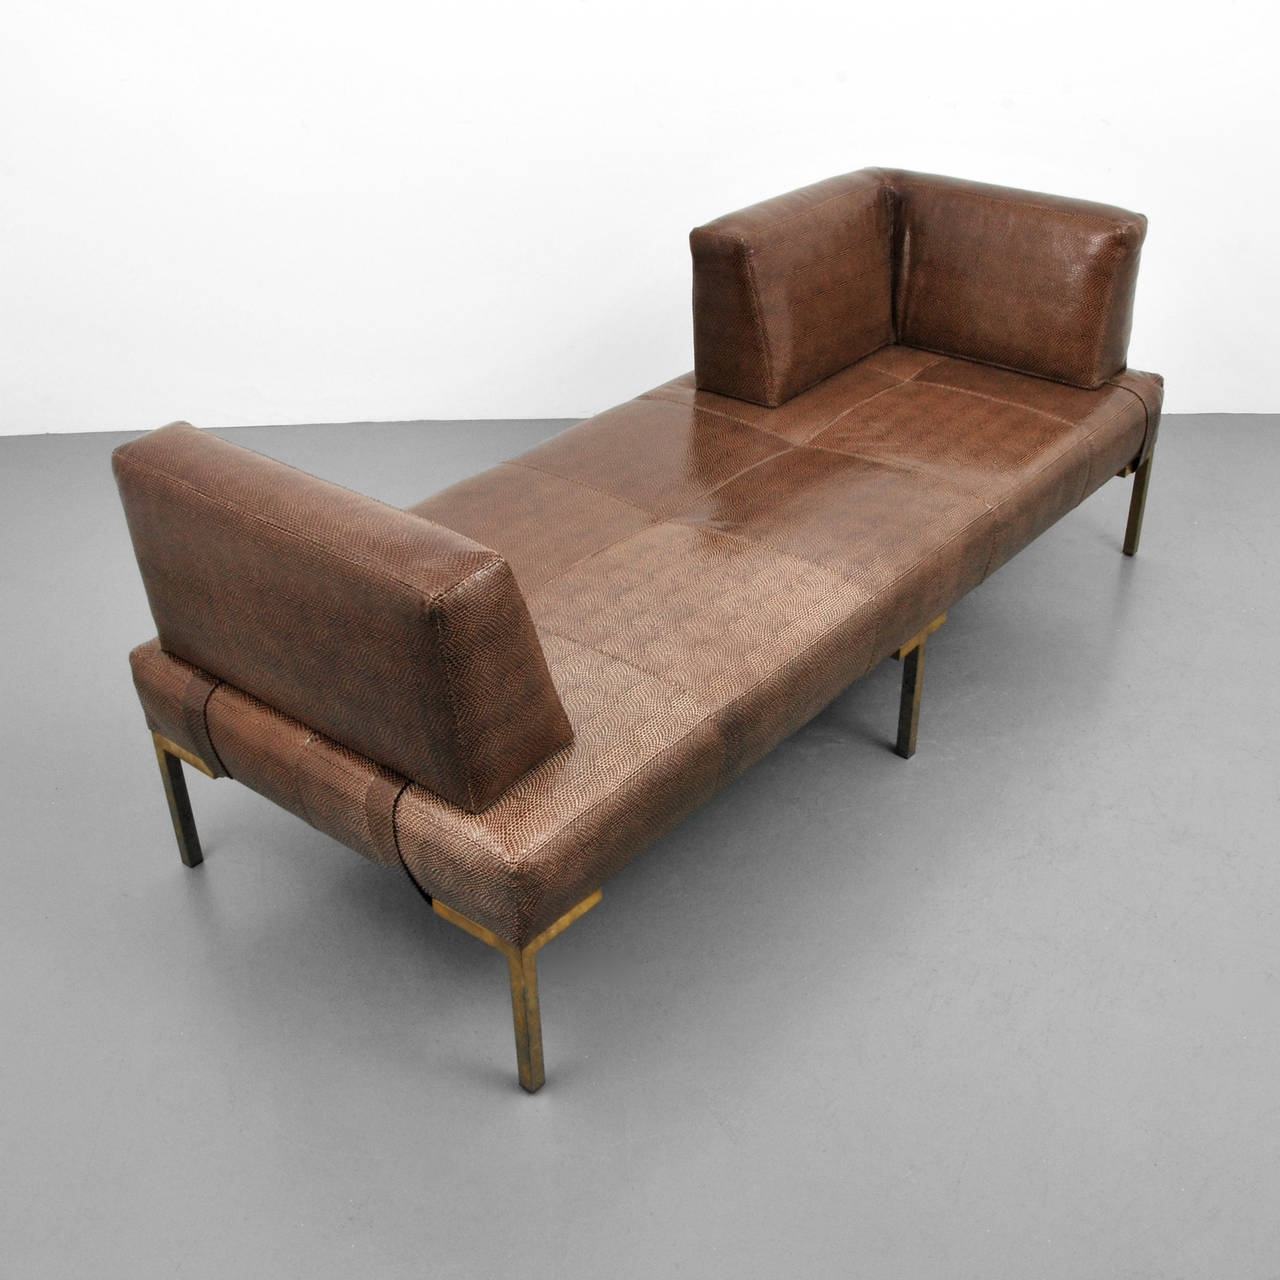 Most Popular Chaise Lounge Daybed Best 25 Longue Ideas On Pinterest Regarding Mathis Brothers Chaise Lounge Chairs (View 10 of 15)